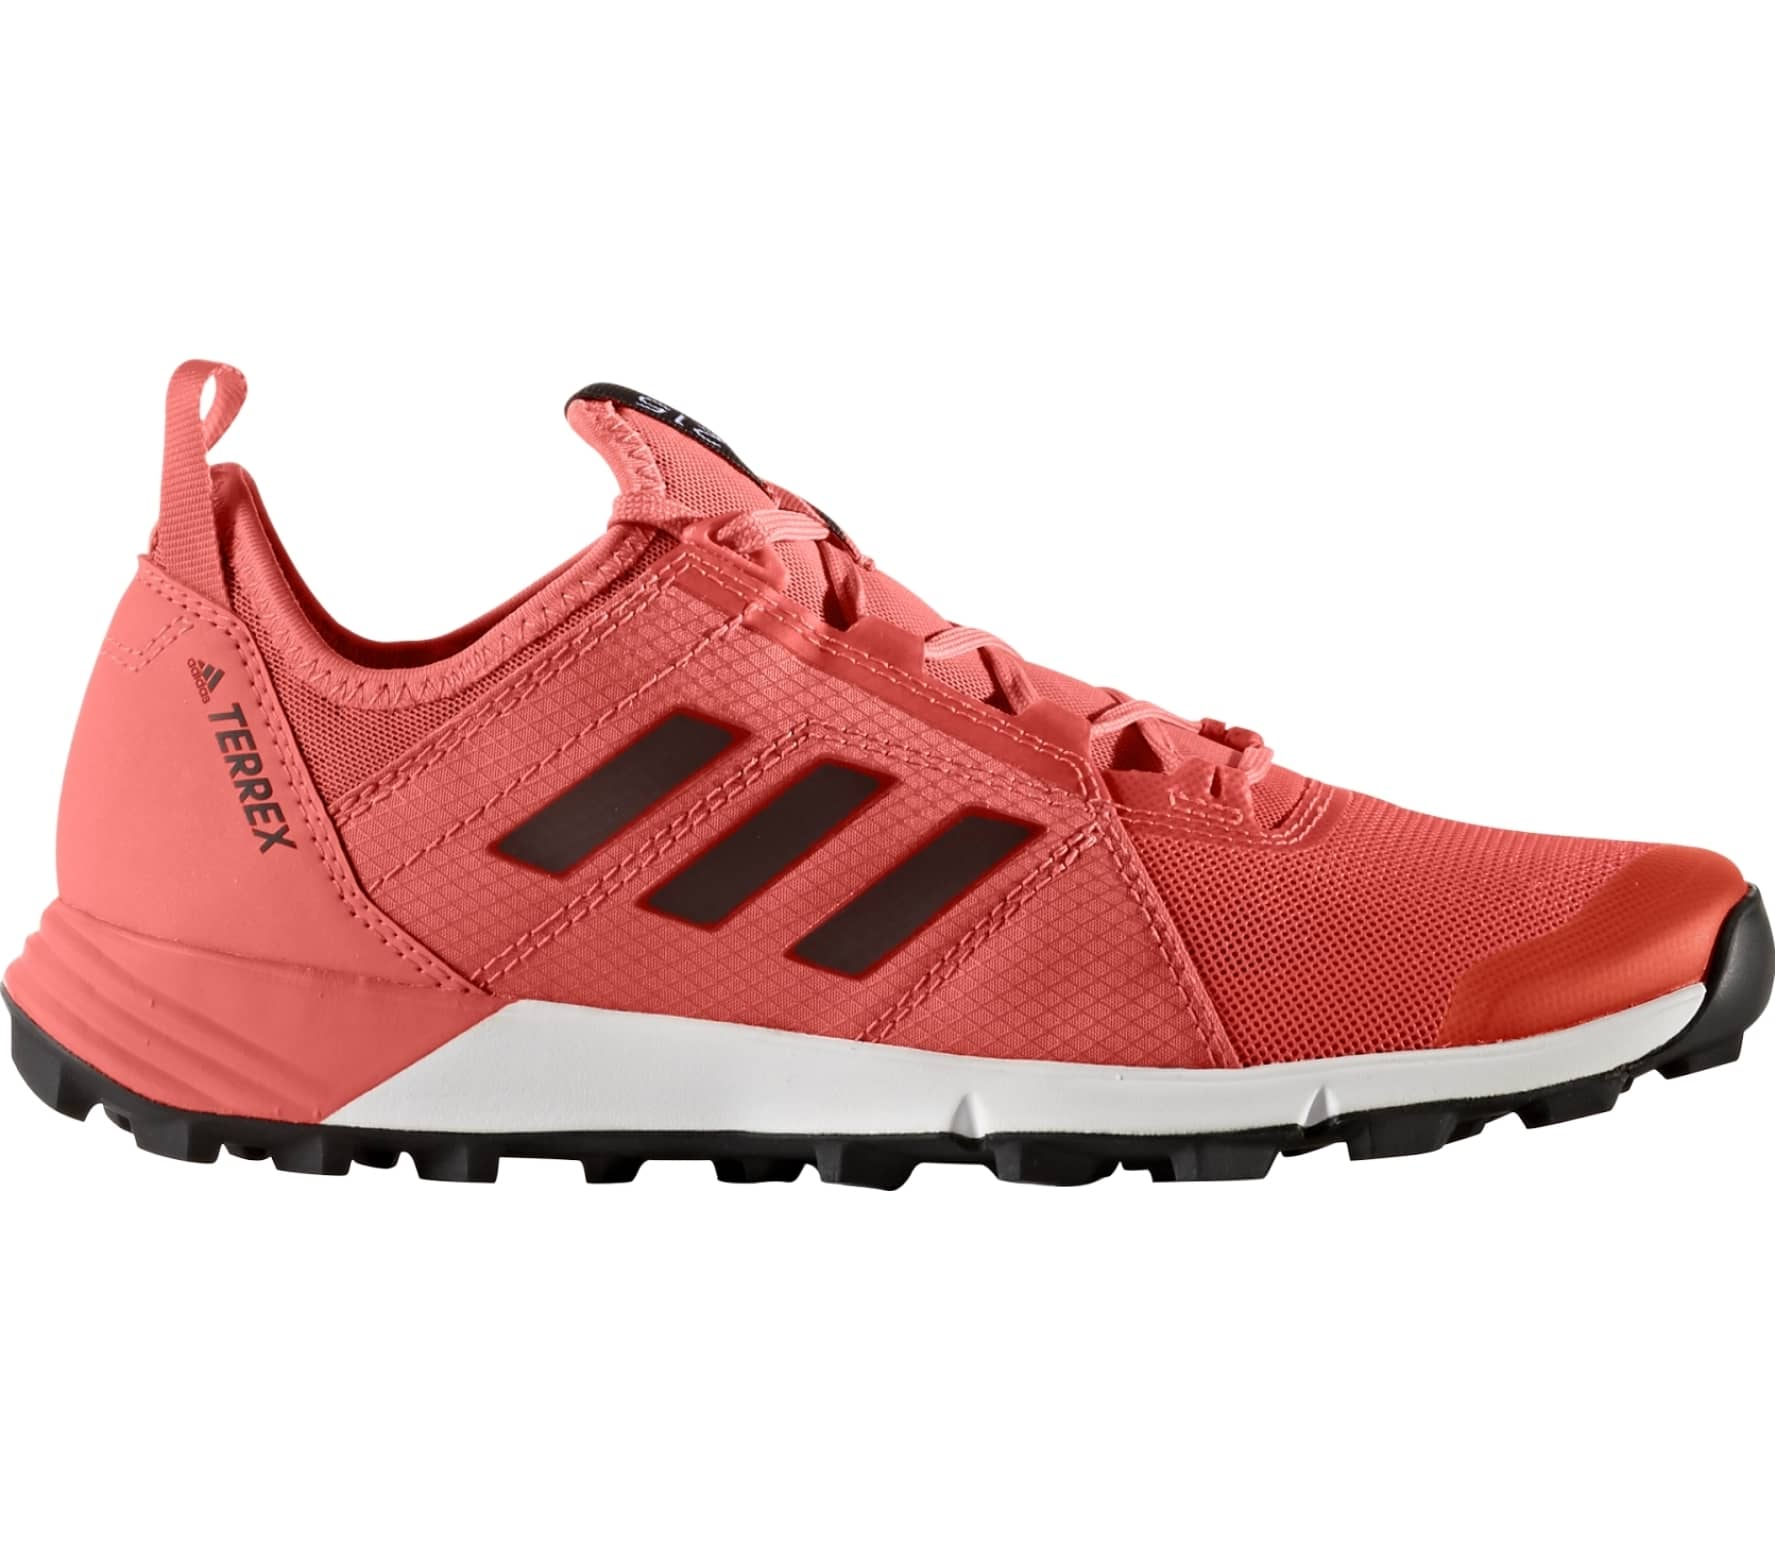 Terrex Pour Running Chaussures De Agravic Trail Speed Adidas 4Lj5AR3